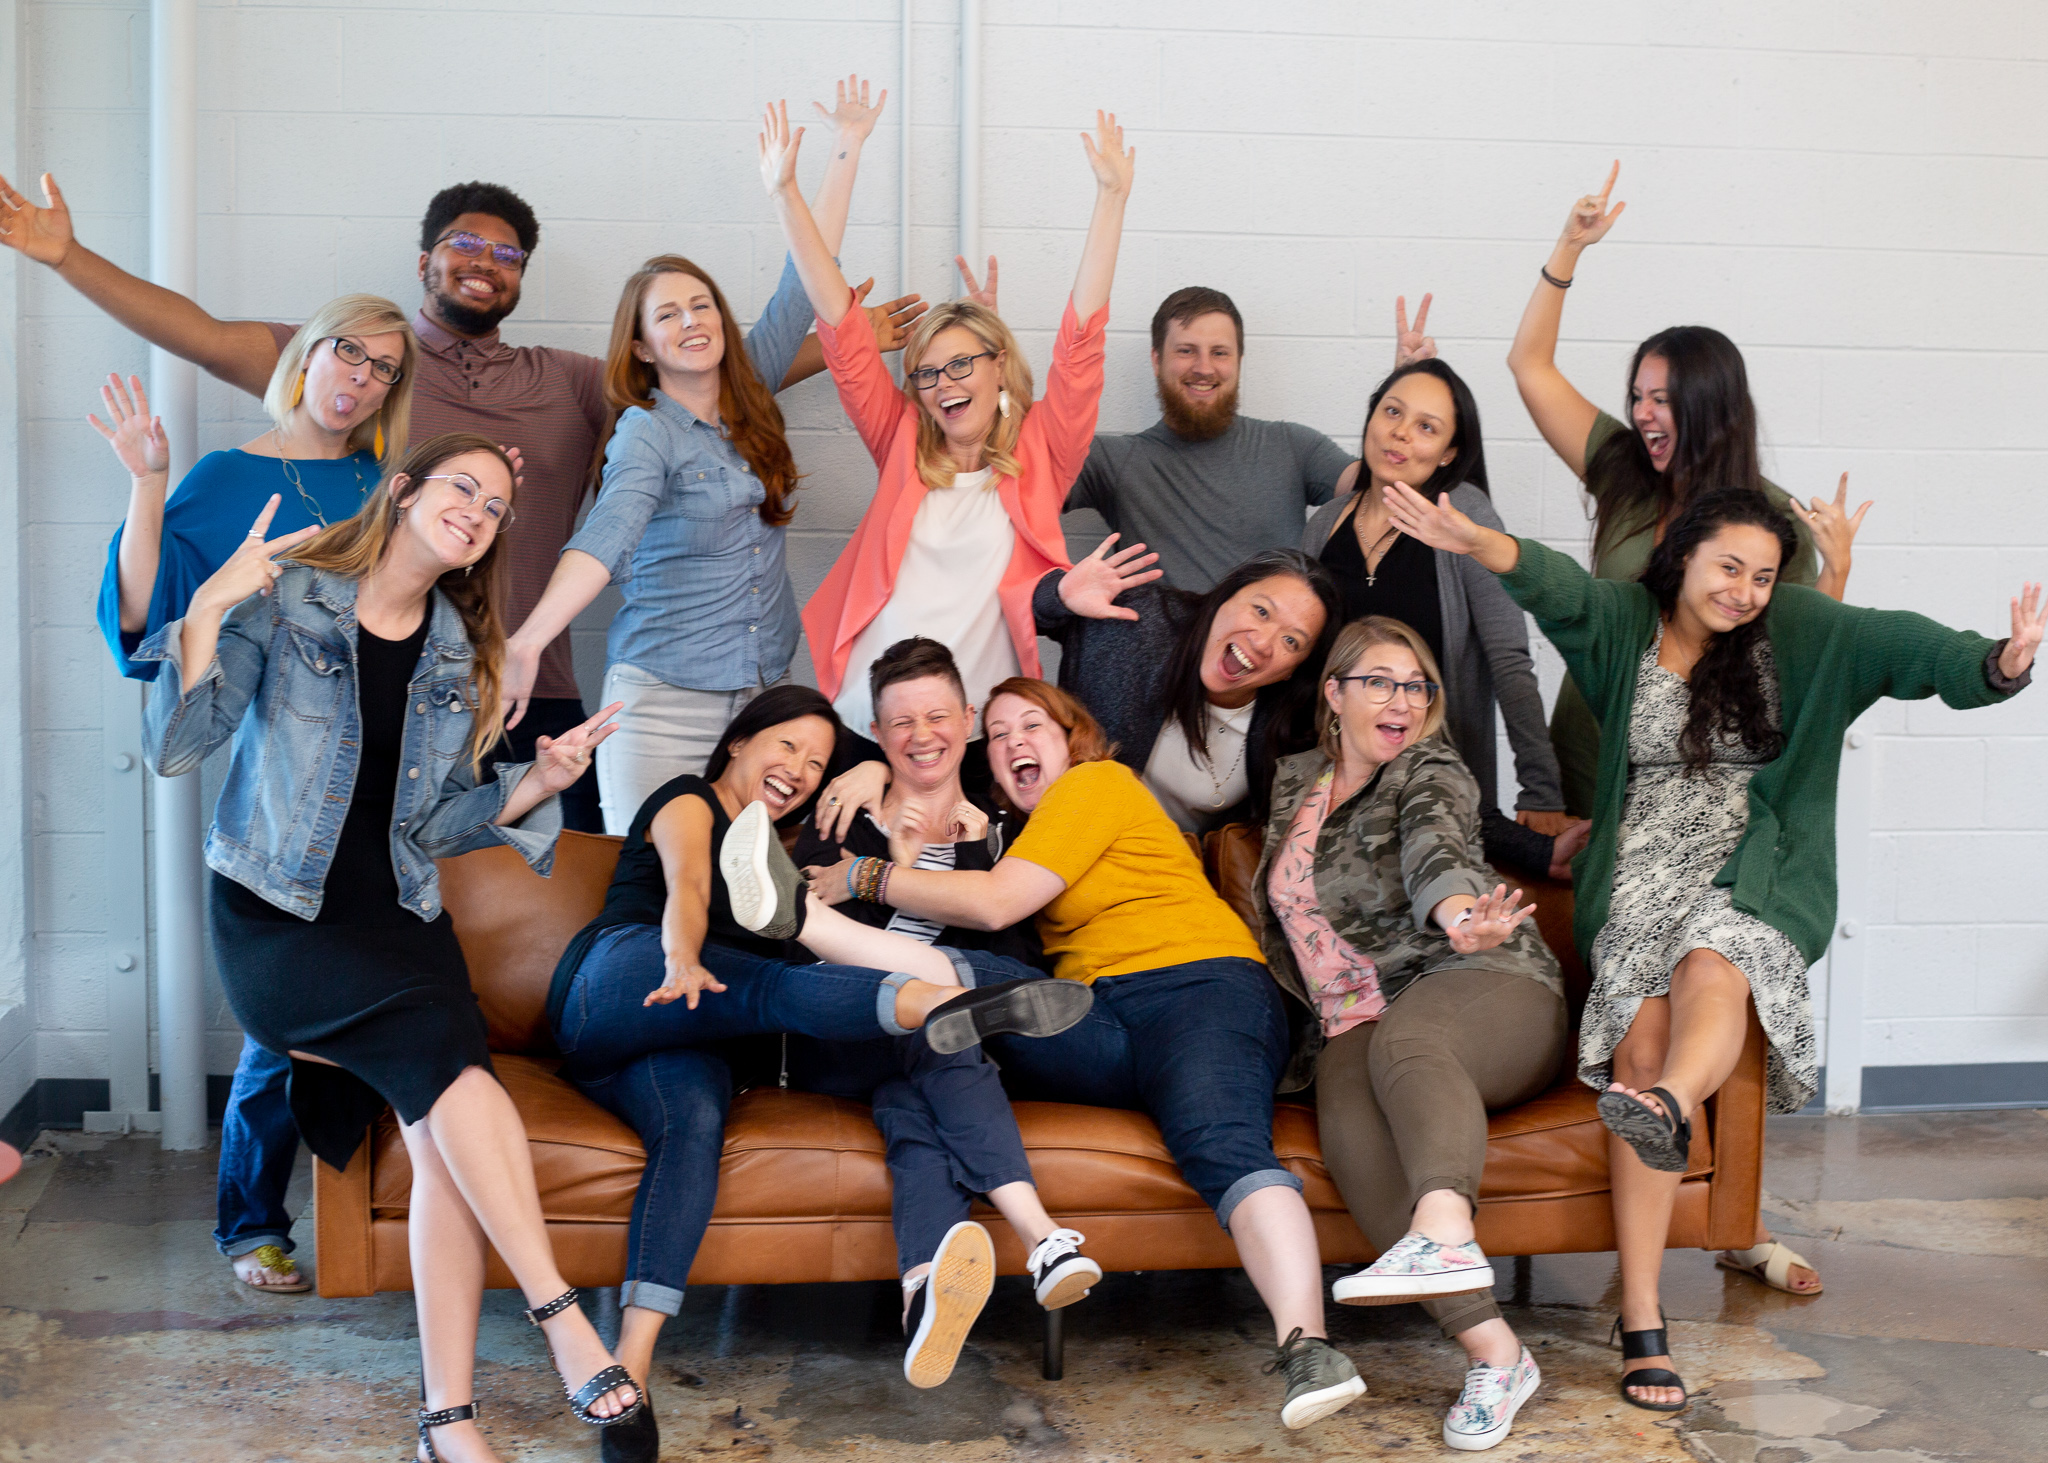 Group of women entrepreneurs being goofy and happy, along with a handful of male advisors that are allies